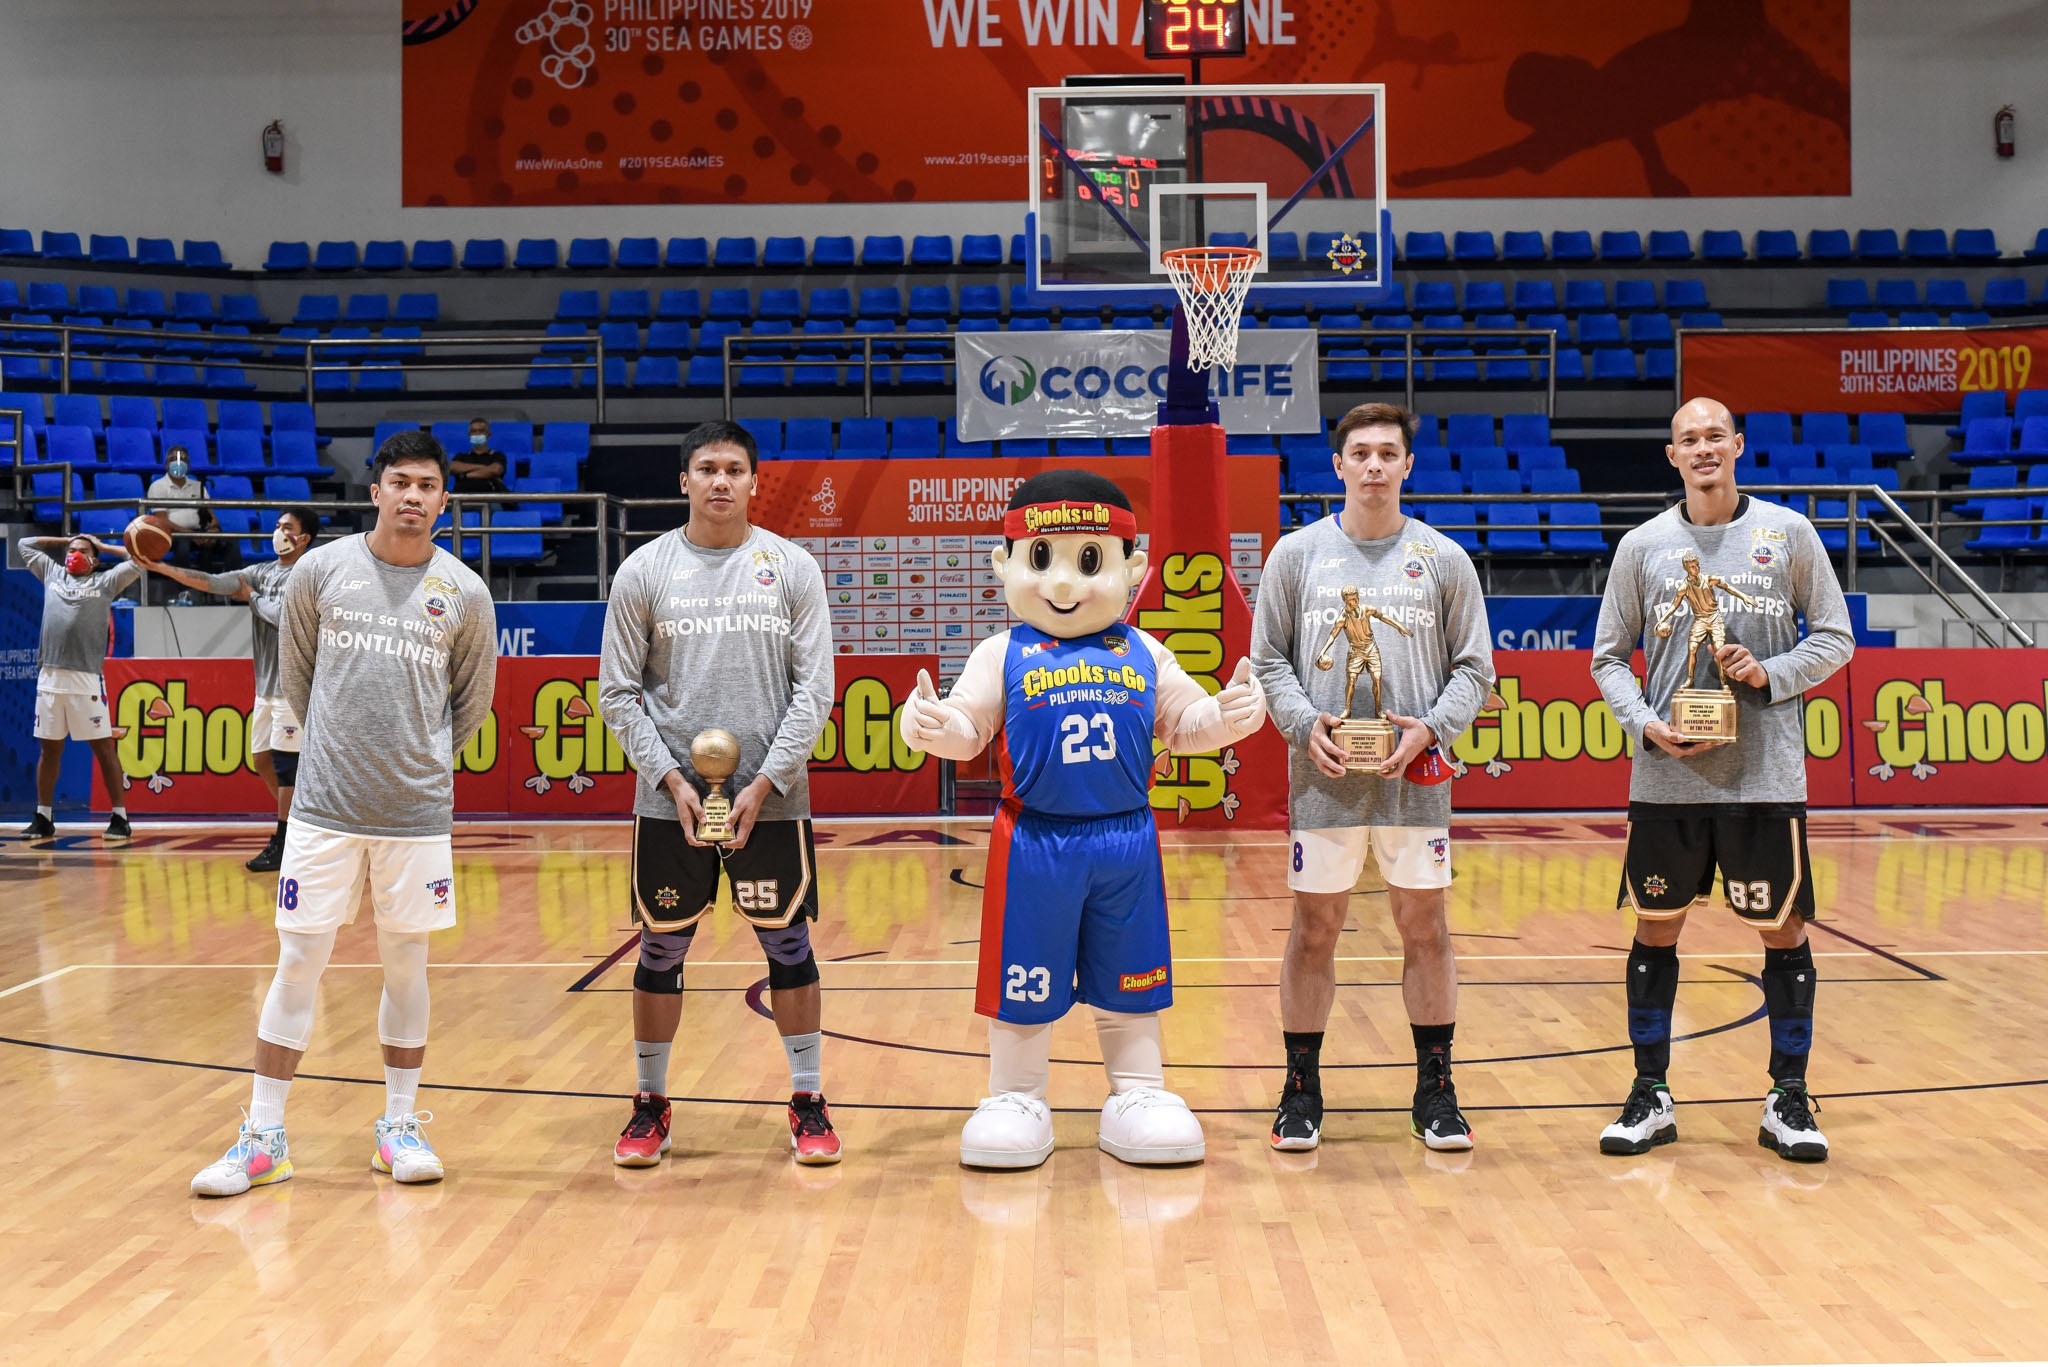 2019-21-Chooks-to-Go-MPBL-Lakan-Season-Awarding-Ceremony-Group-Photo-Mike-Ayonayon-x-Billy-Robles-x-John-Wilson-x-Mark-Yee John Wilson crowned Chooks-to-Go MPBL Lakan Season MVP Basketball MPBL News  - philippine sports news